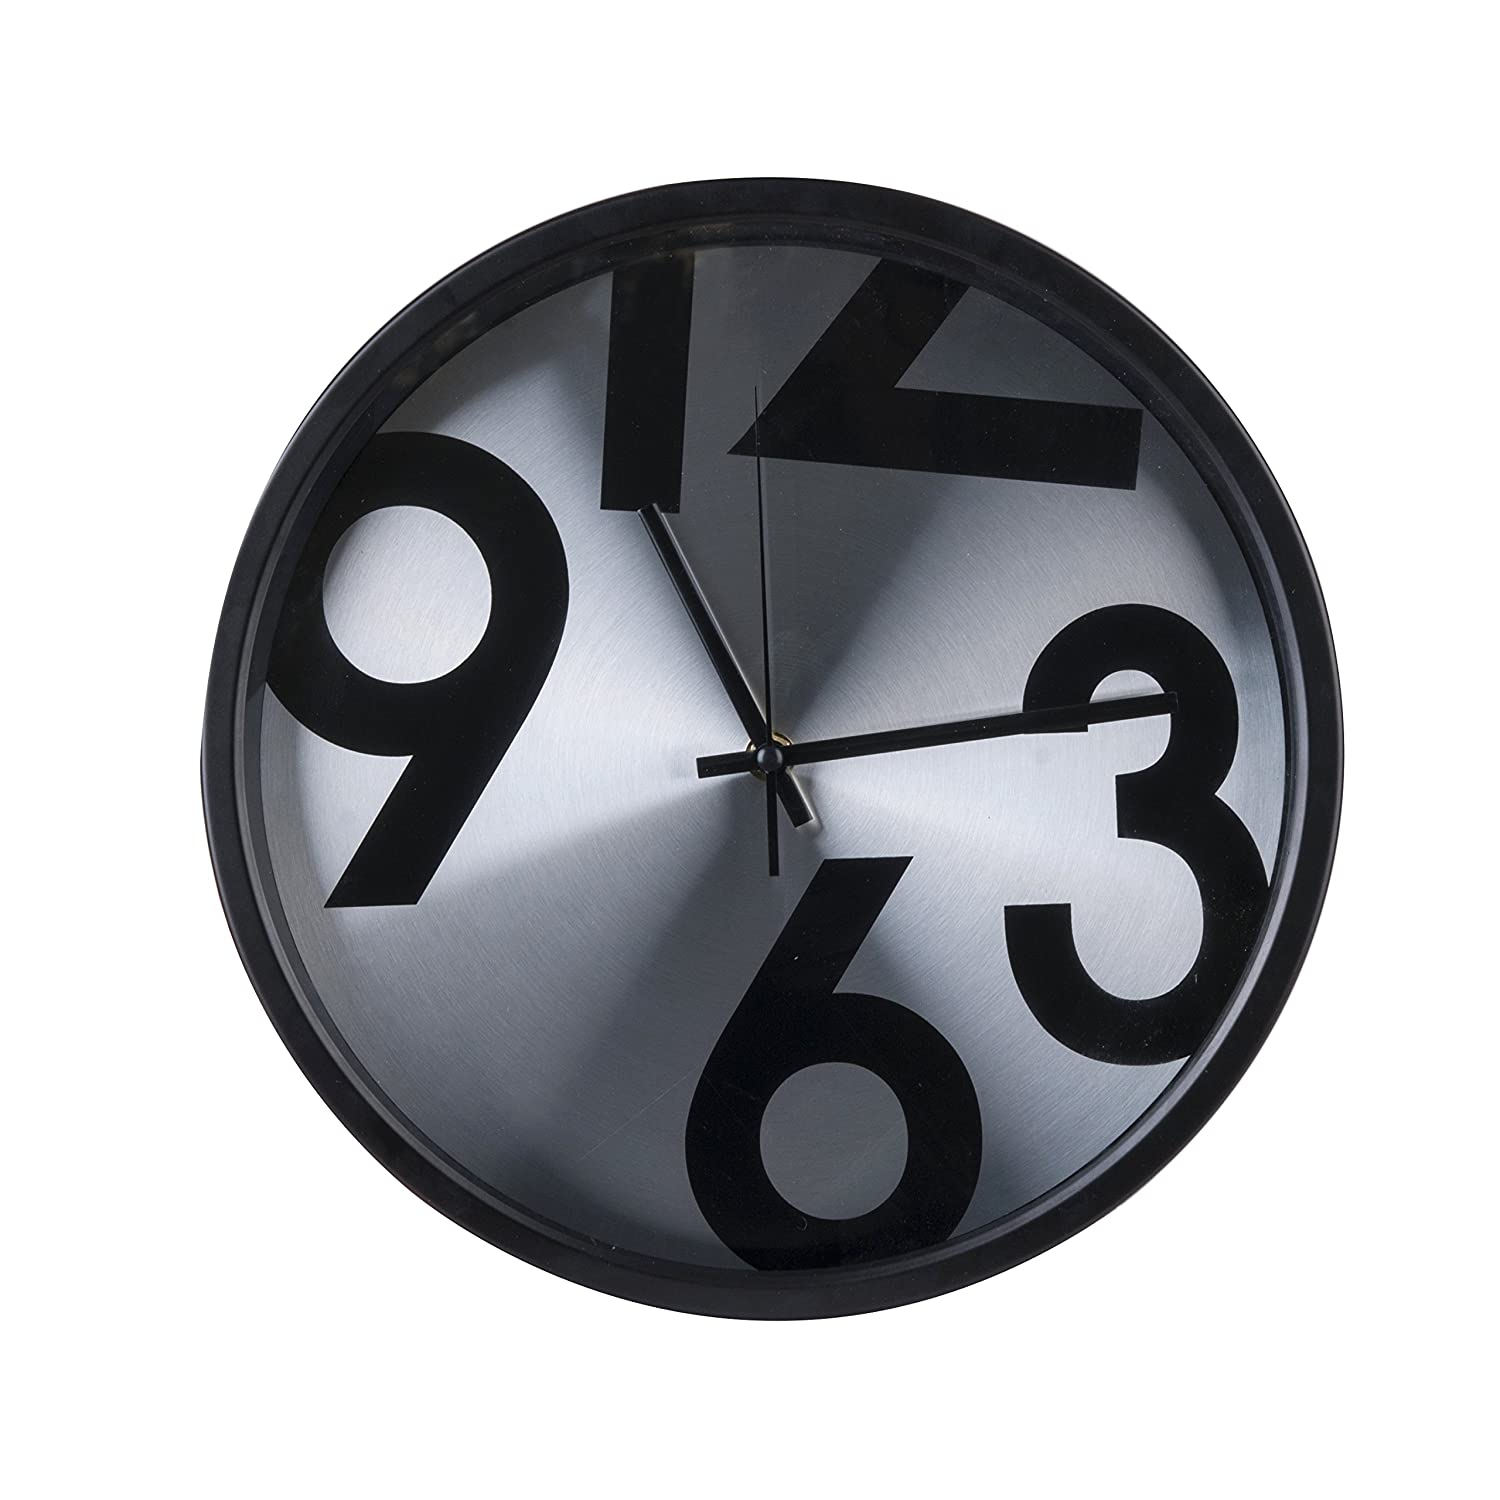 Amazon.com: Torch 14Inch Aluminum Glass Round Silent Wall Clock Decorative Design Clock (Bold Number): Home & Kitchen